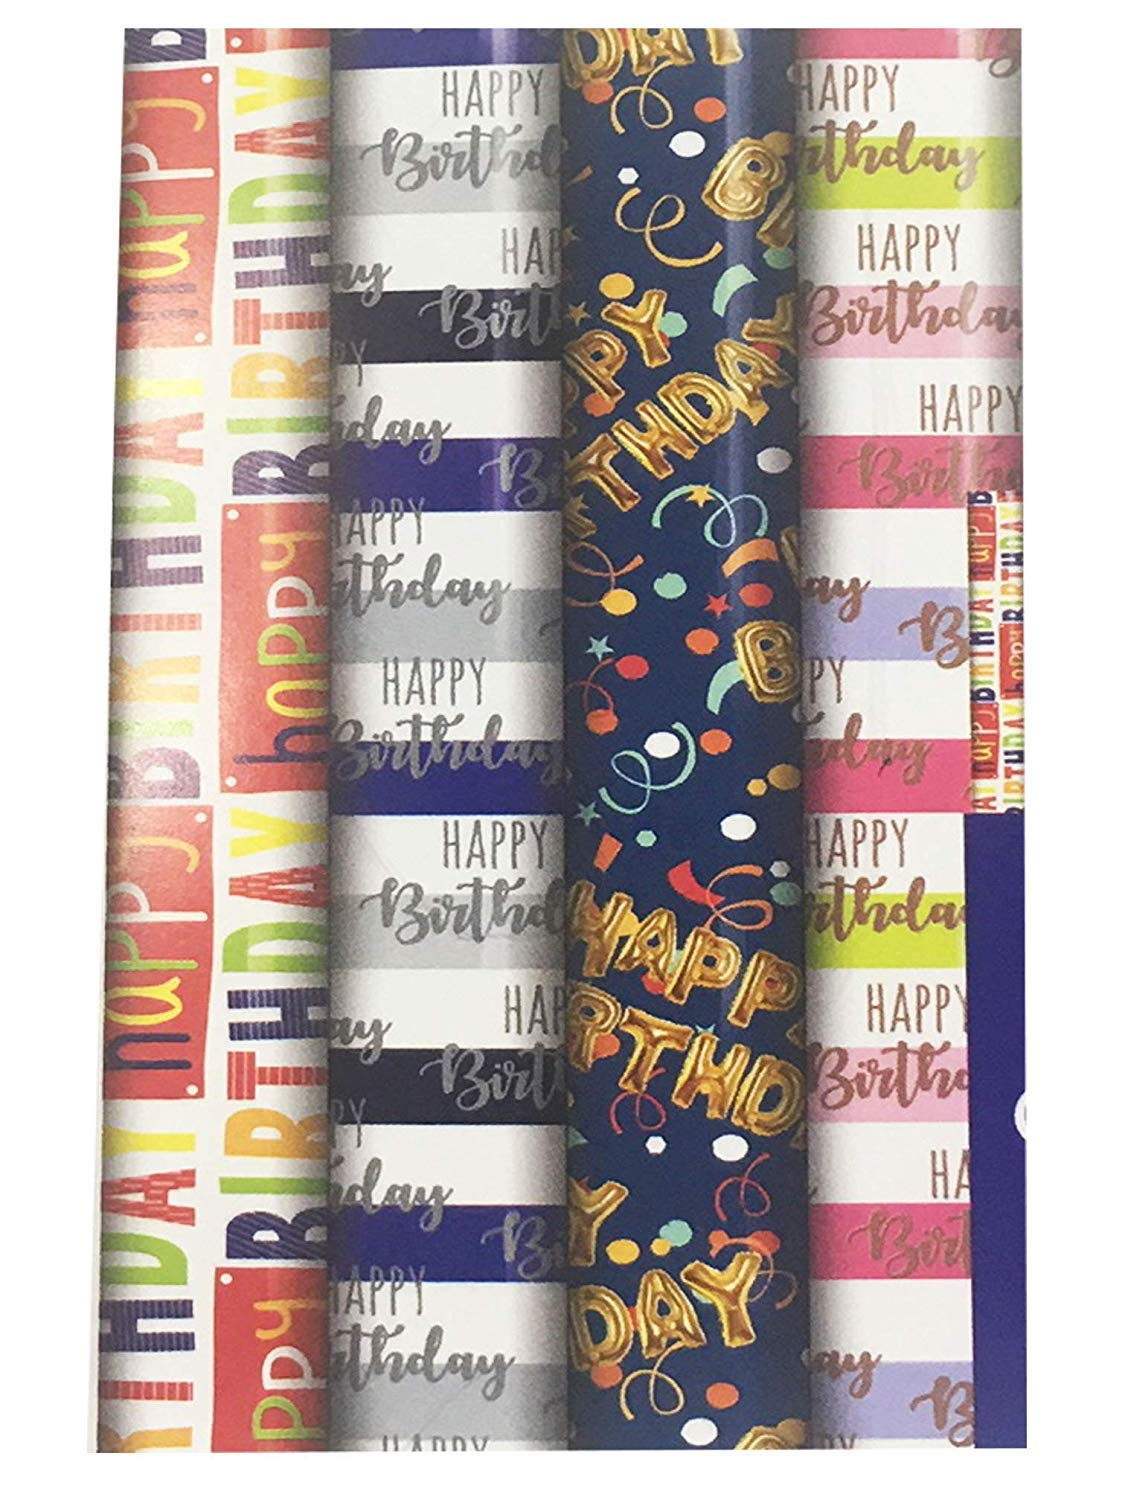 4 x Rolls Of Gift Wrap Wrapping Paper 3M x 70cm Happy Birthday